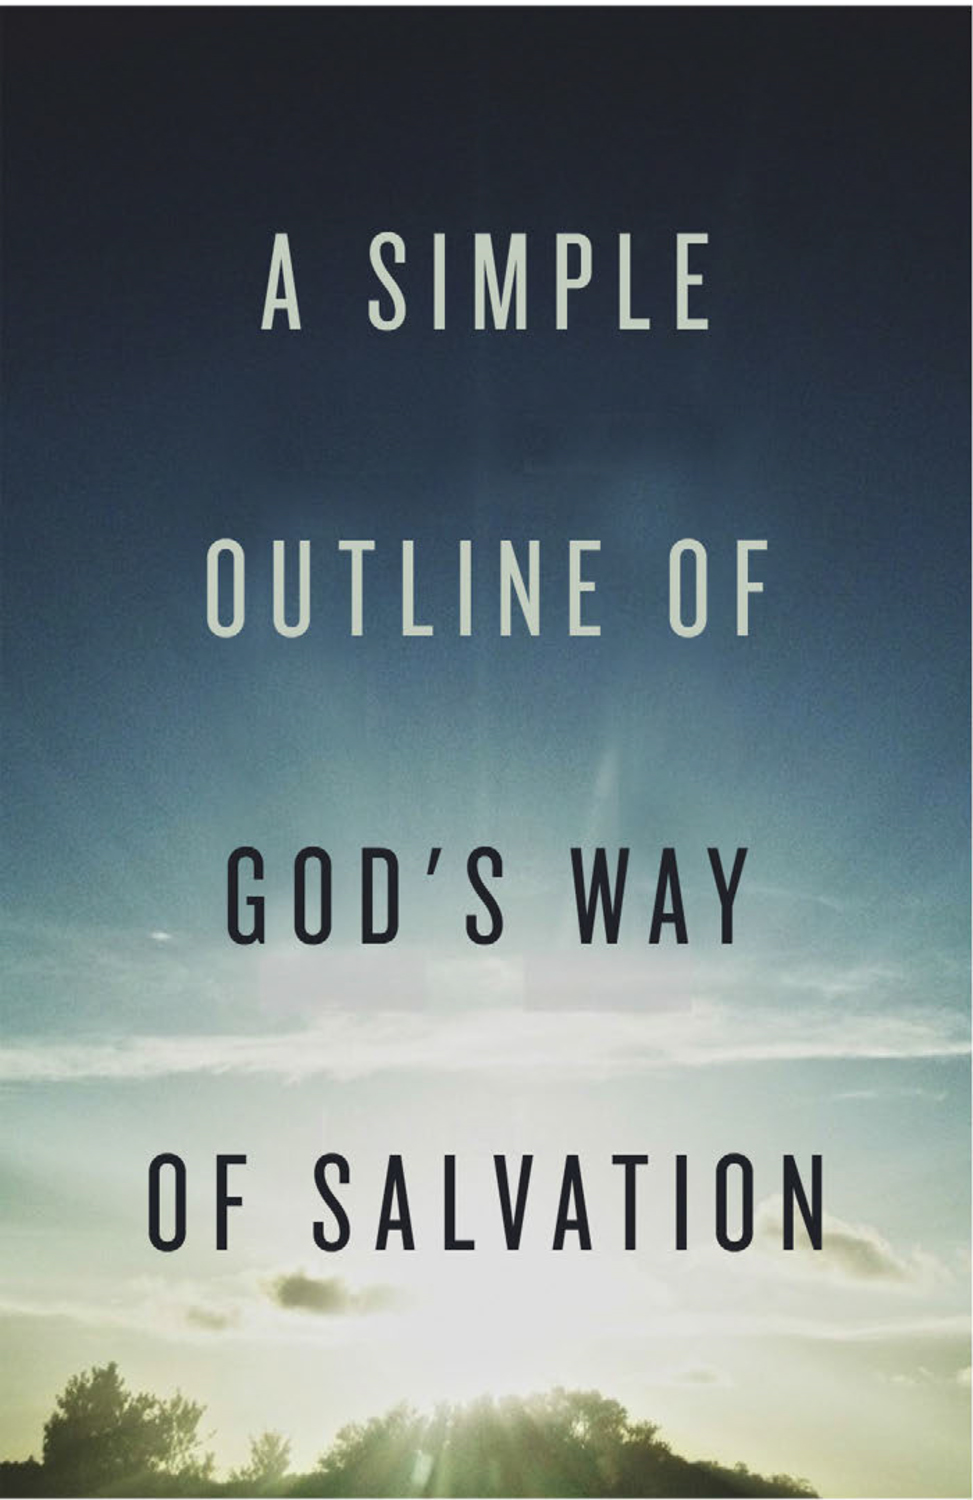 A Simple Outline of God's Way of Salvation